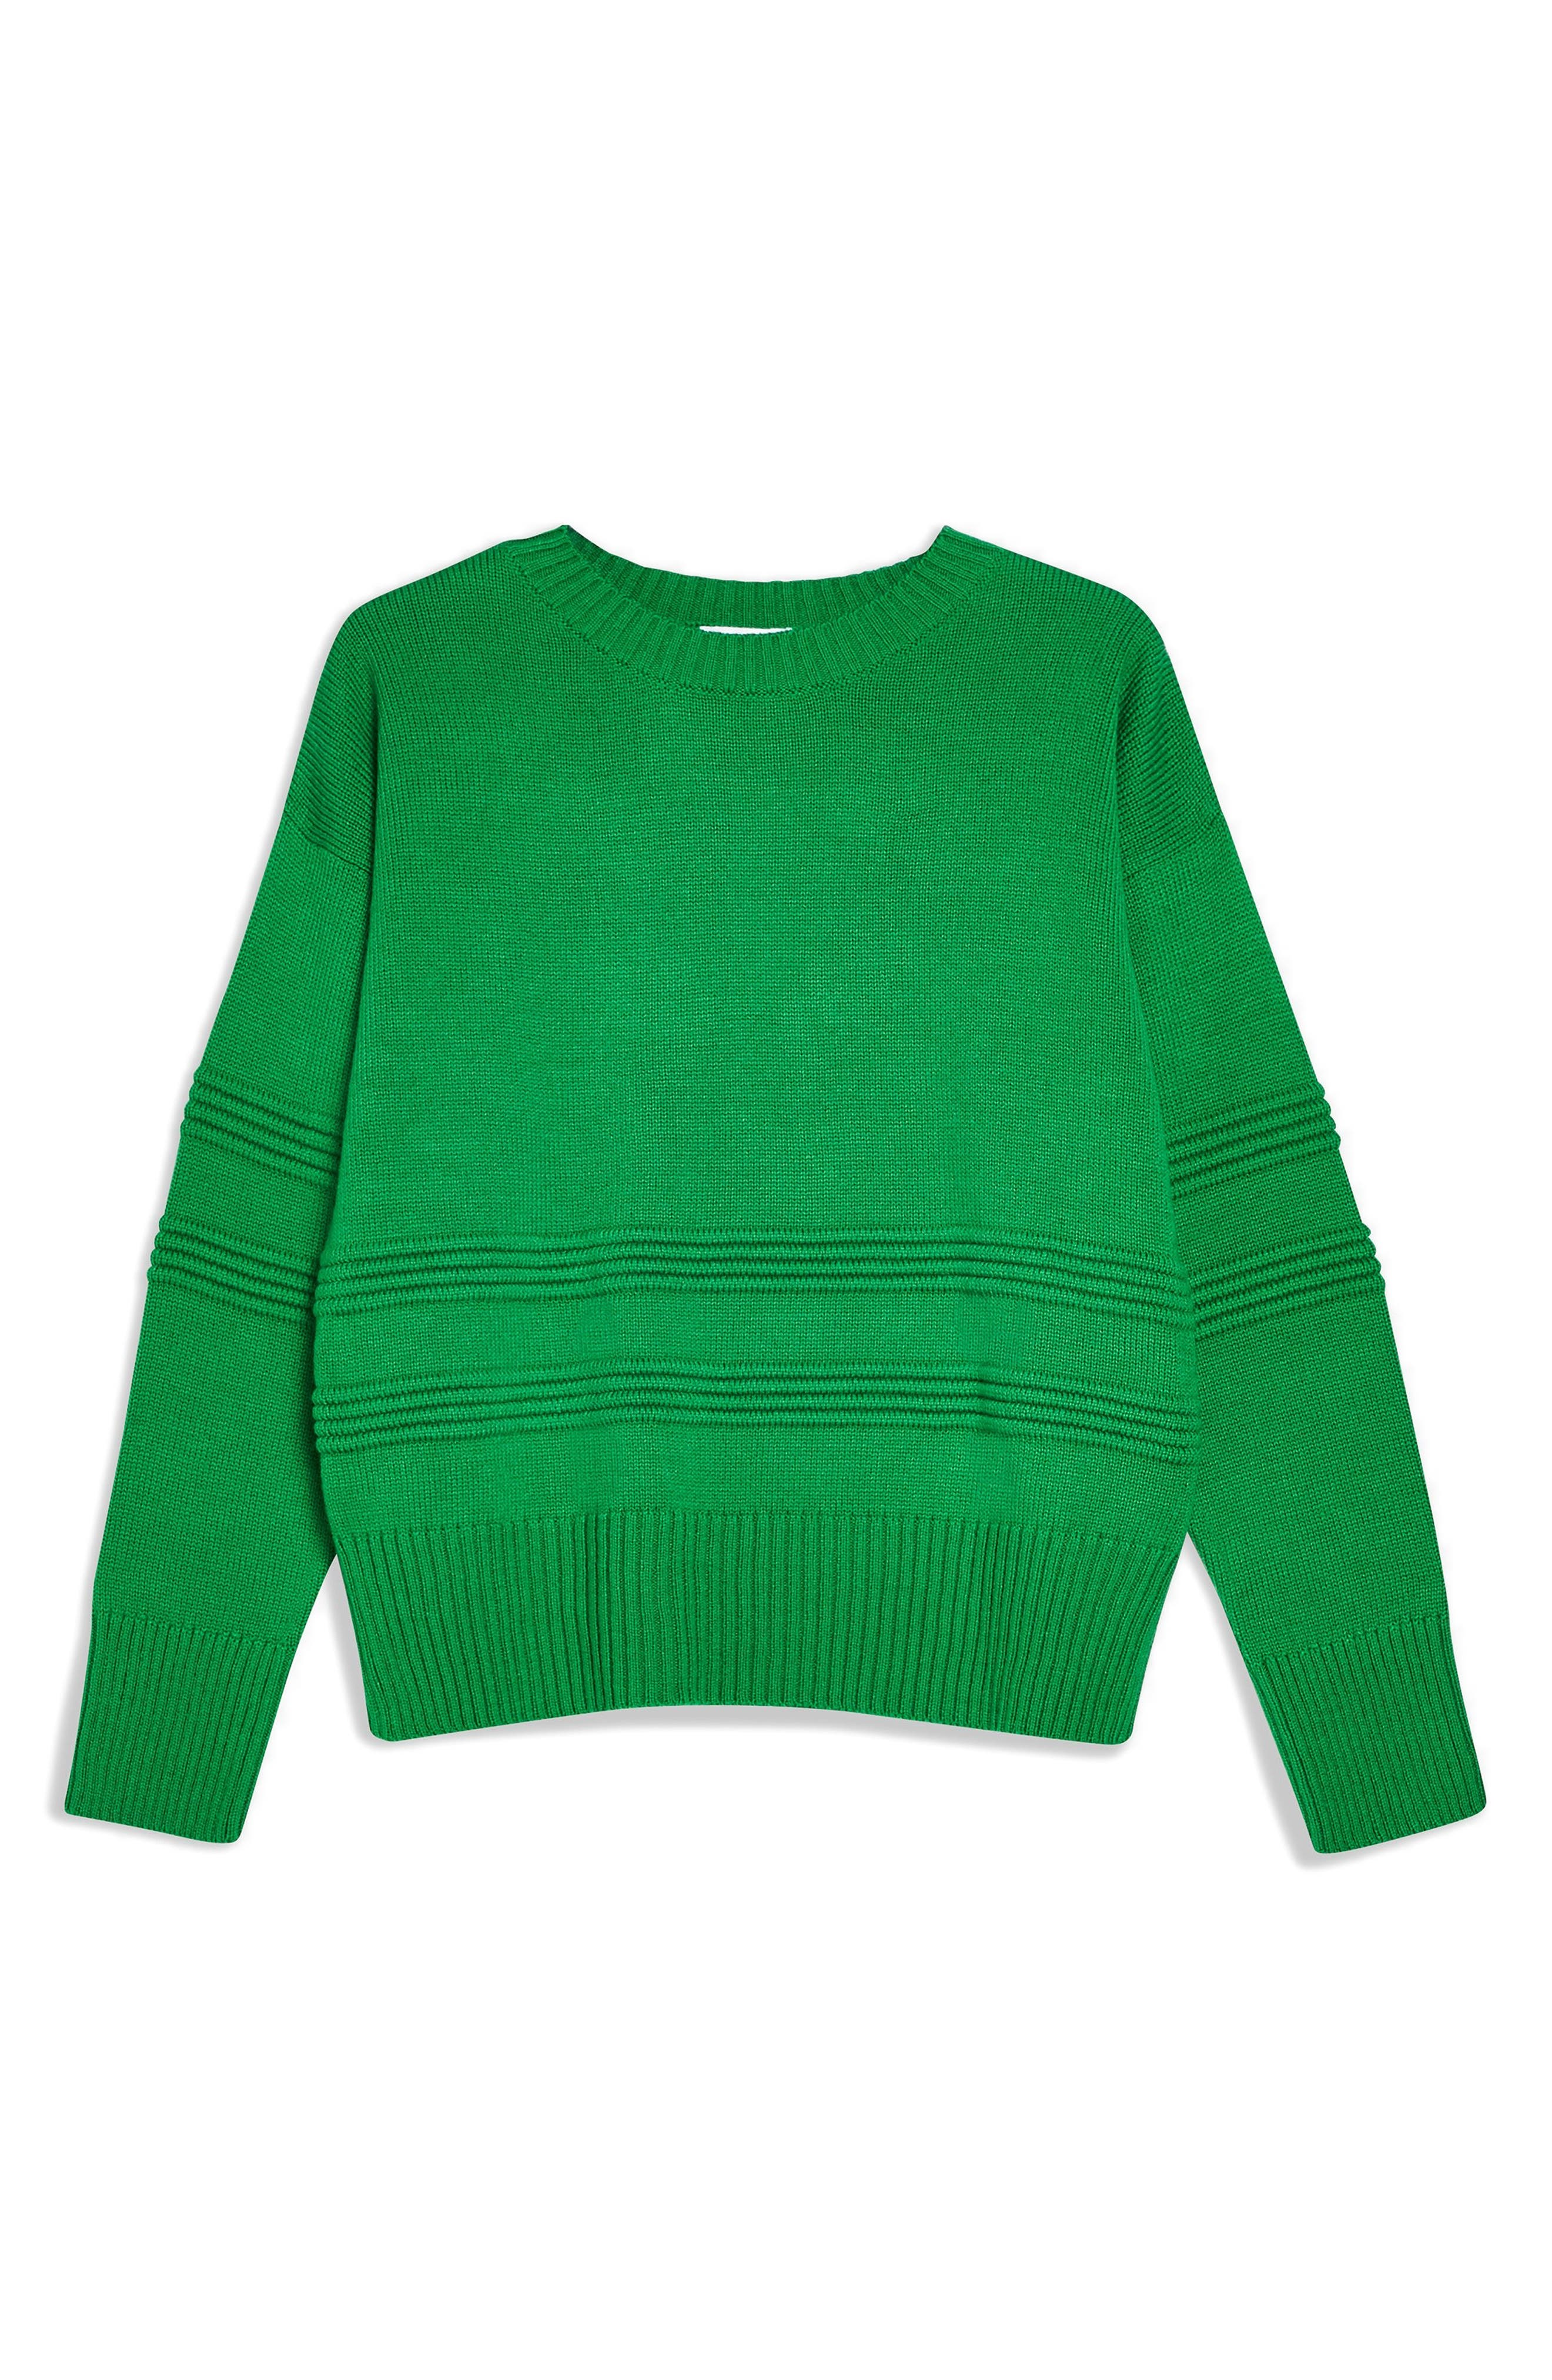 TOPSHOP, Ottoman Stitch Sweater, Alternate thumbnail 3, color, GREEN